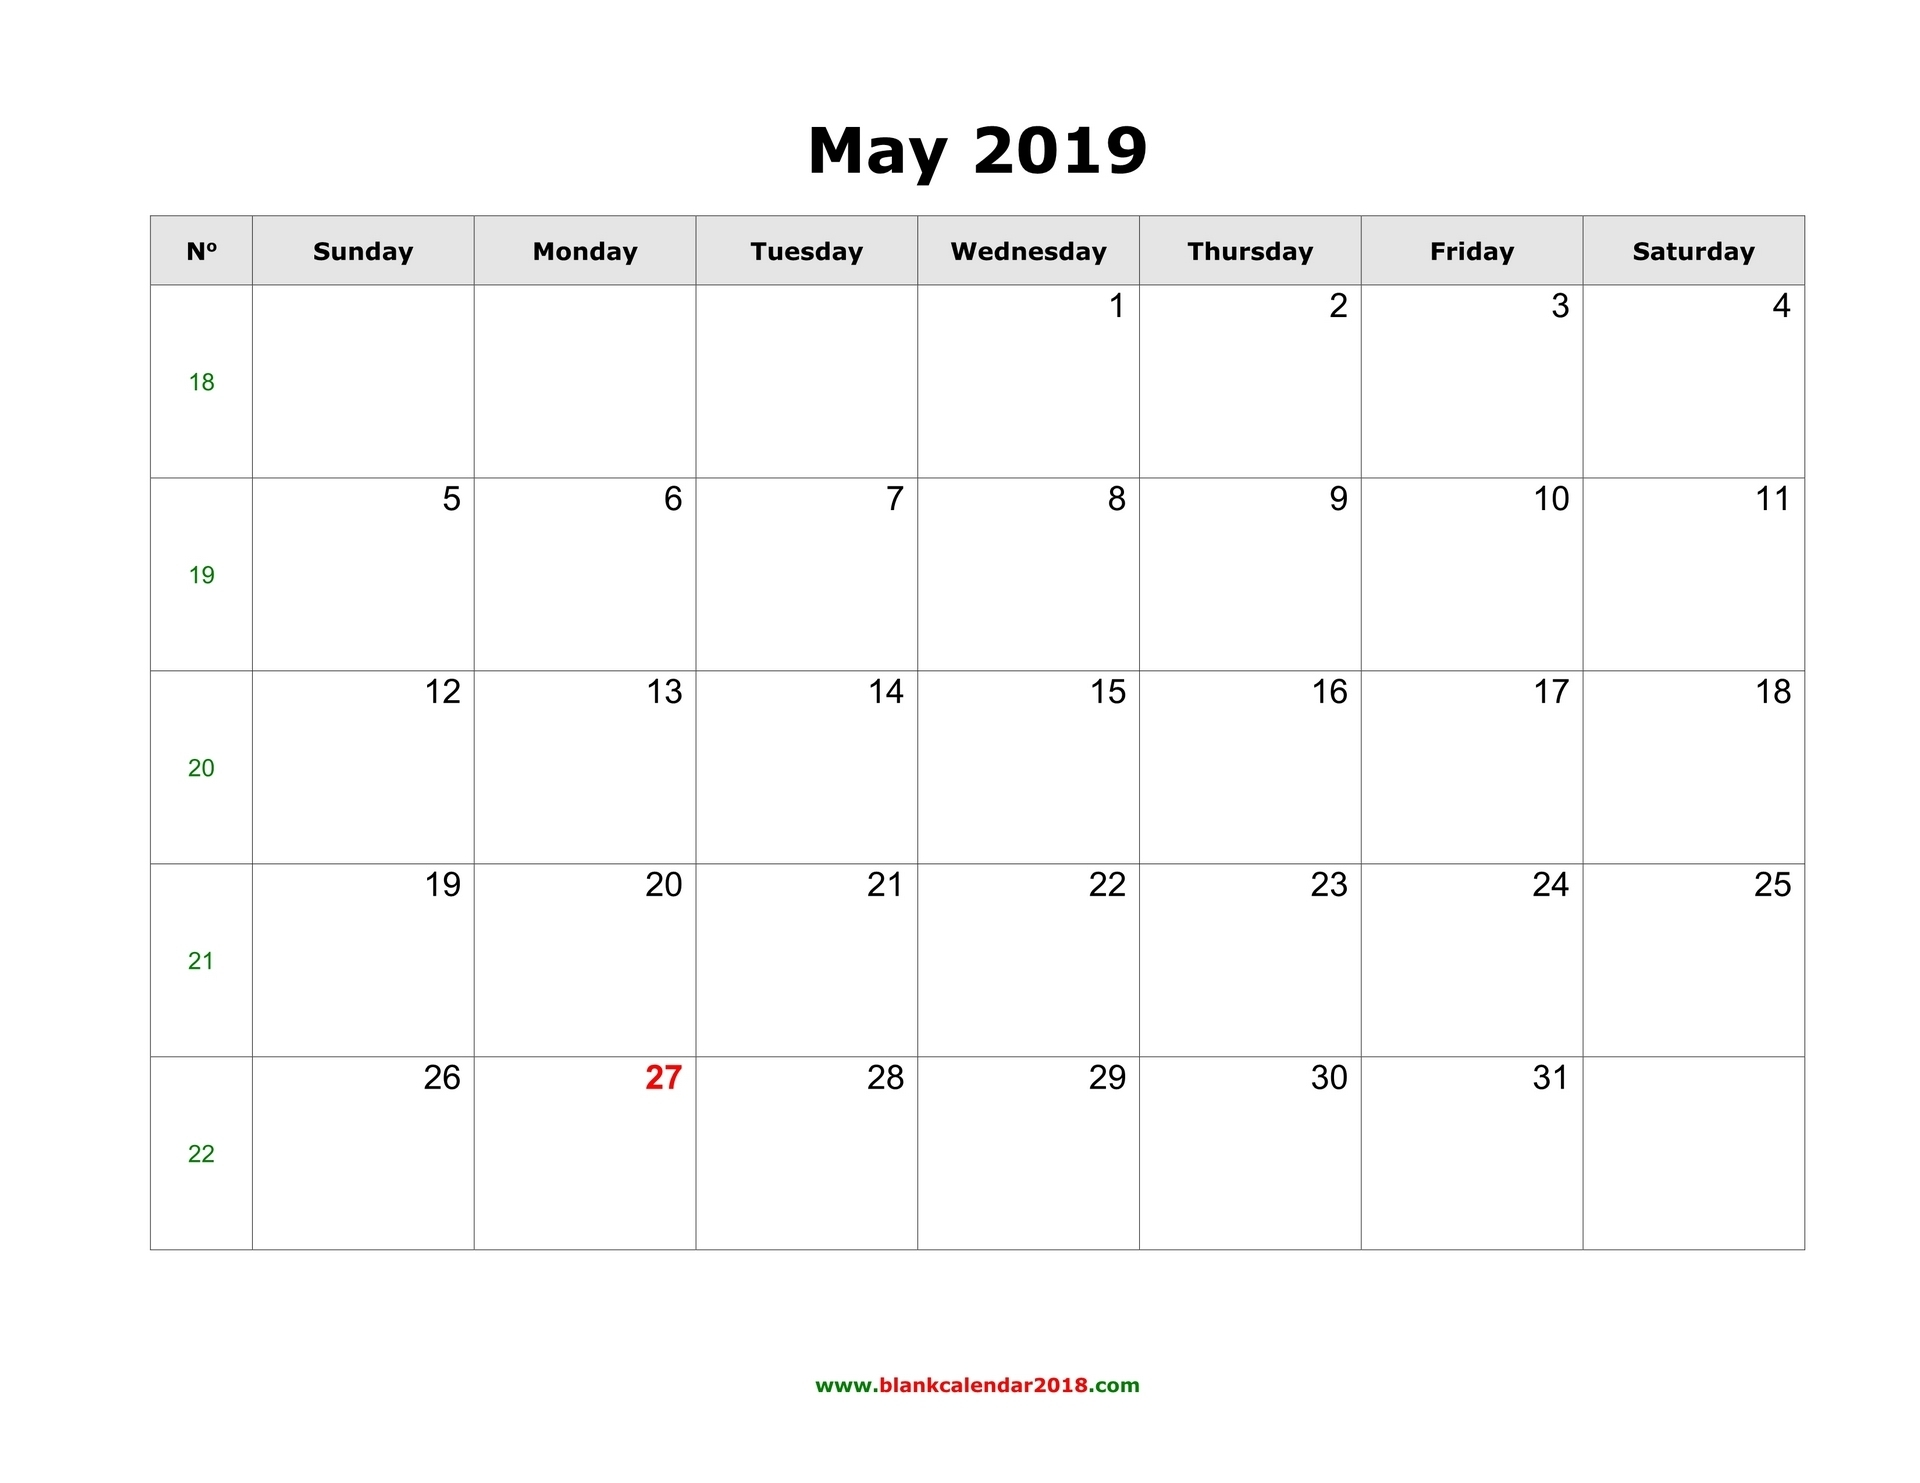 Blank Calendar For May 2019 intended for 2019 Calendar Downloadable Free Word